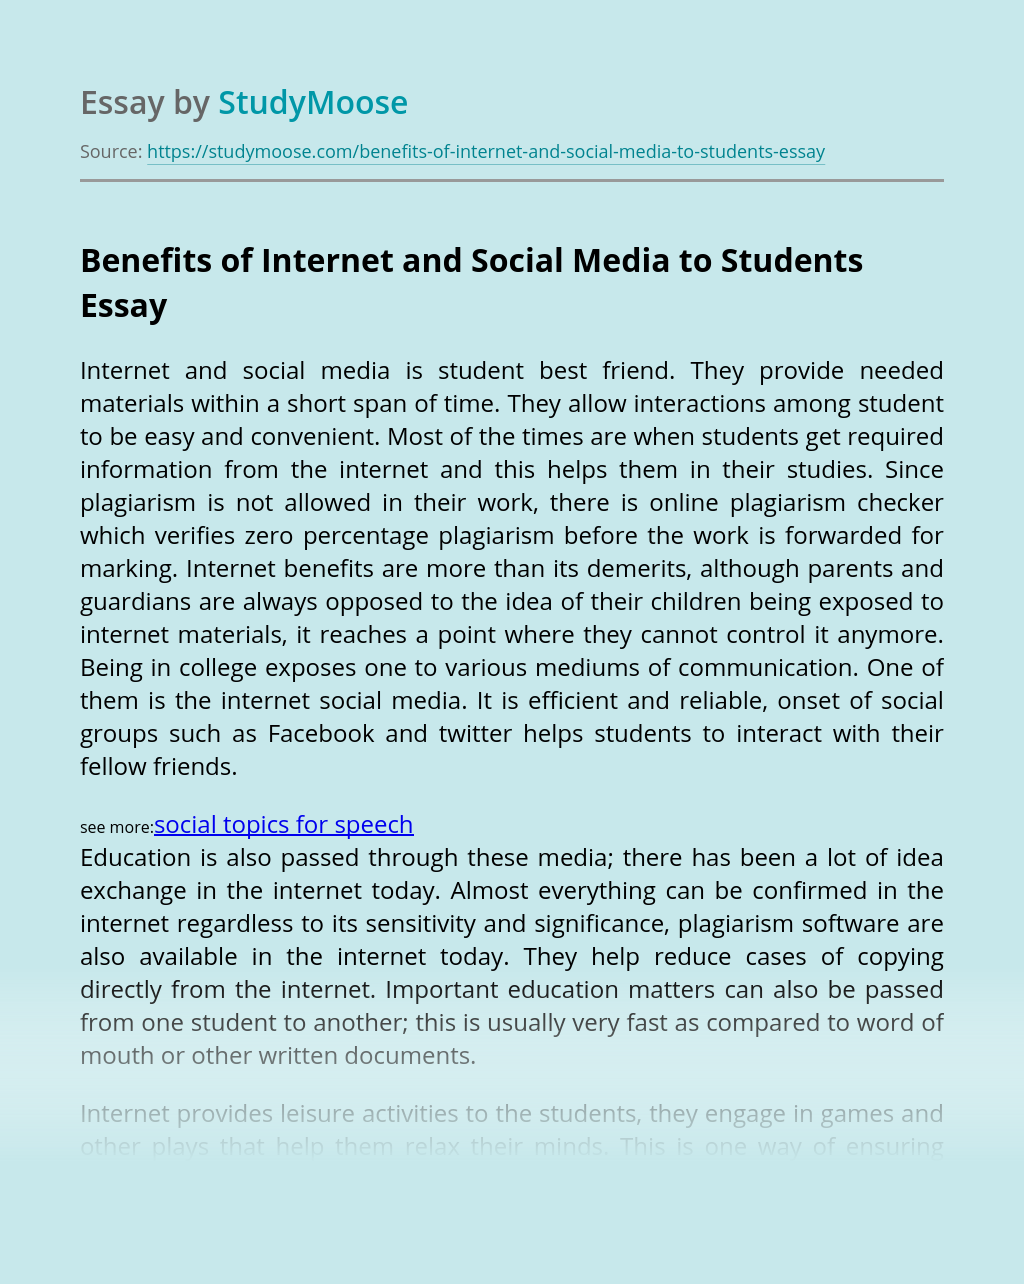 Benefits of Internet and Social Media to Students